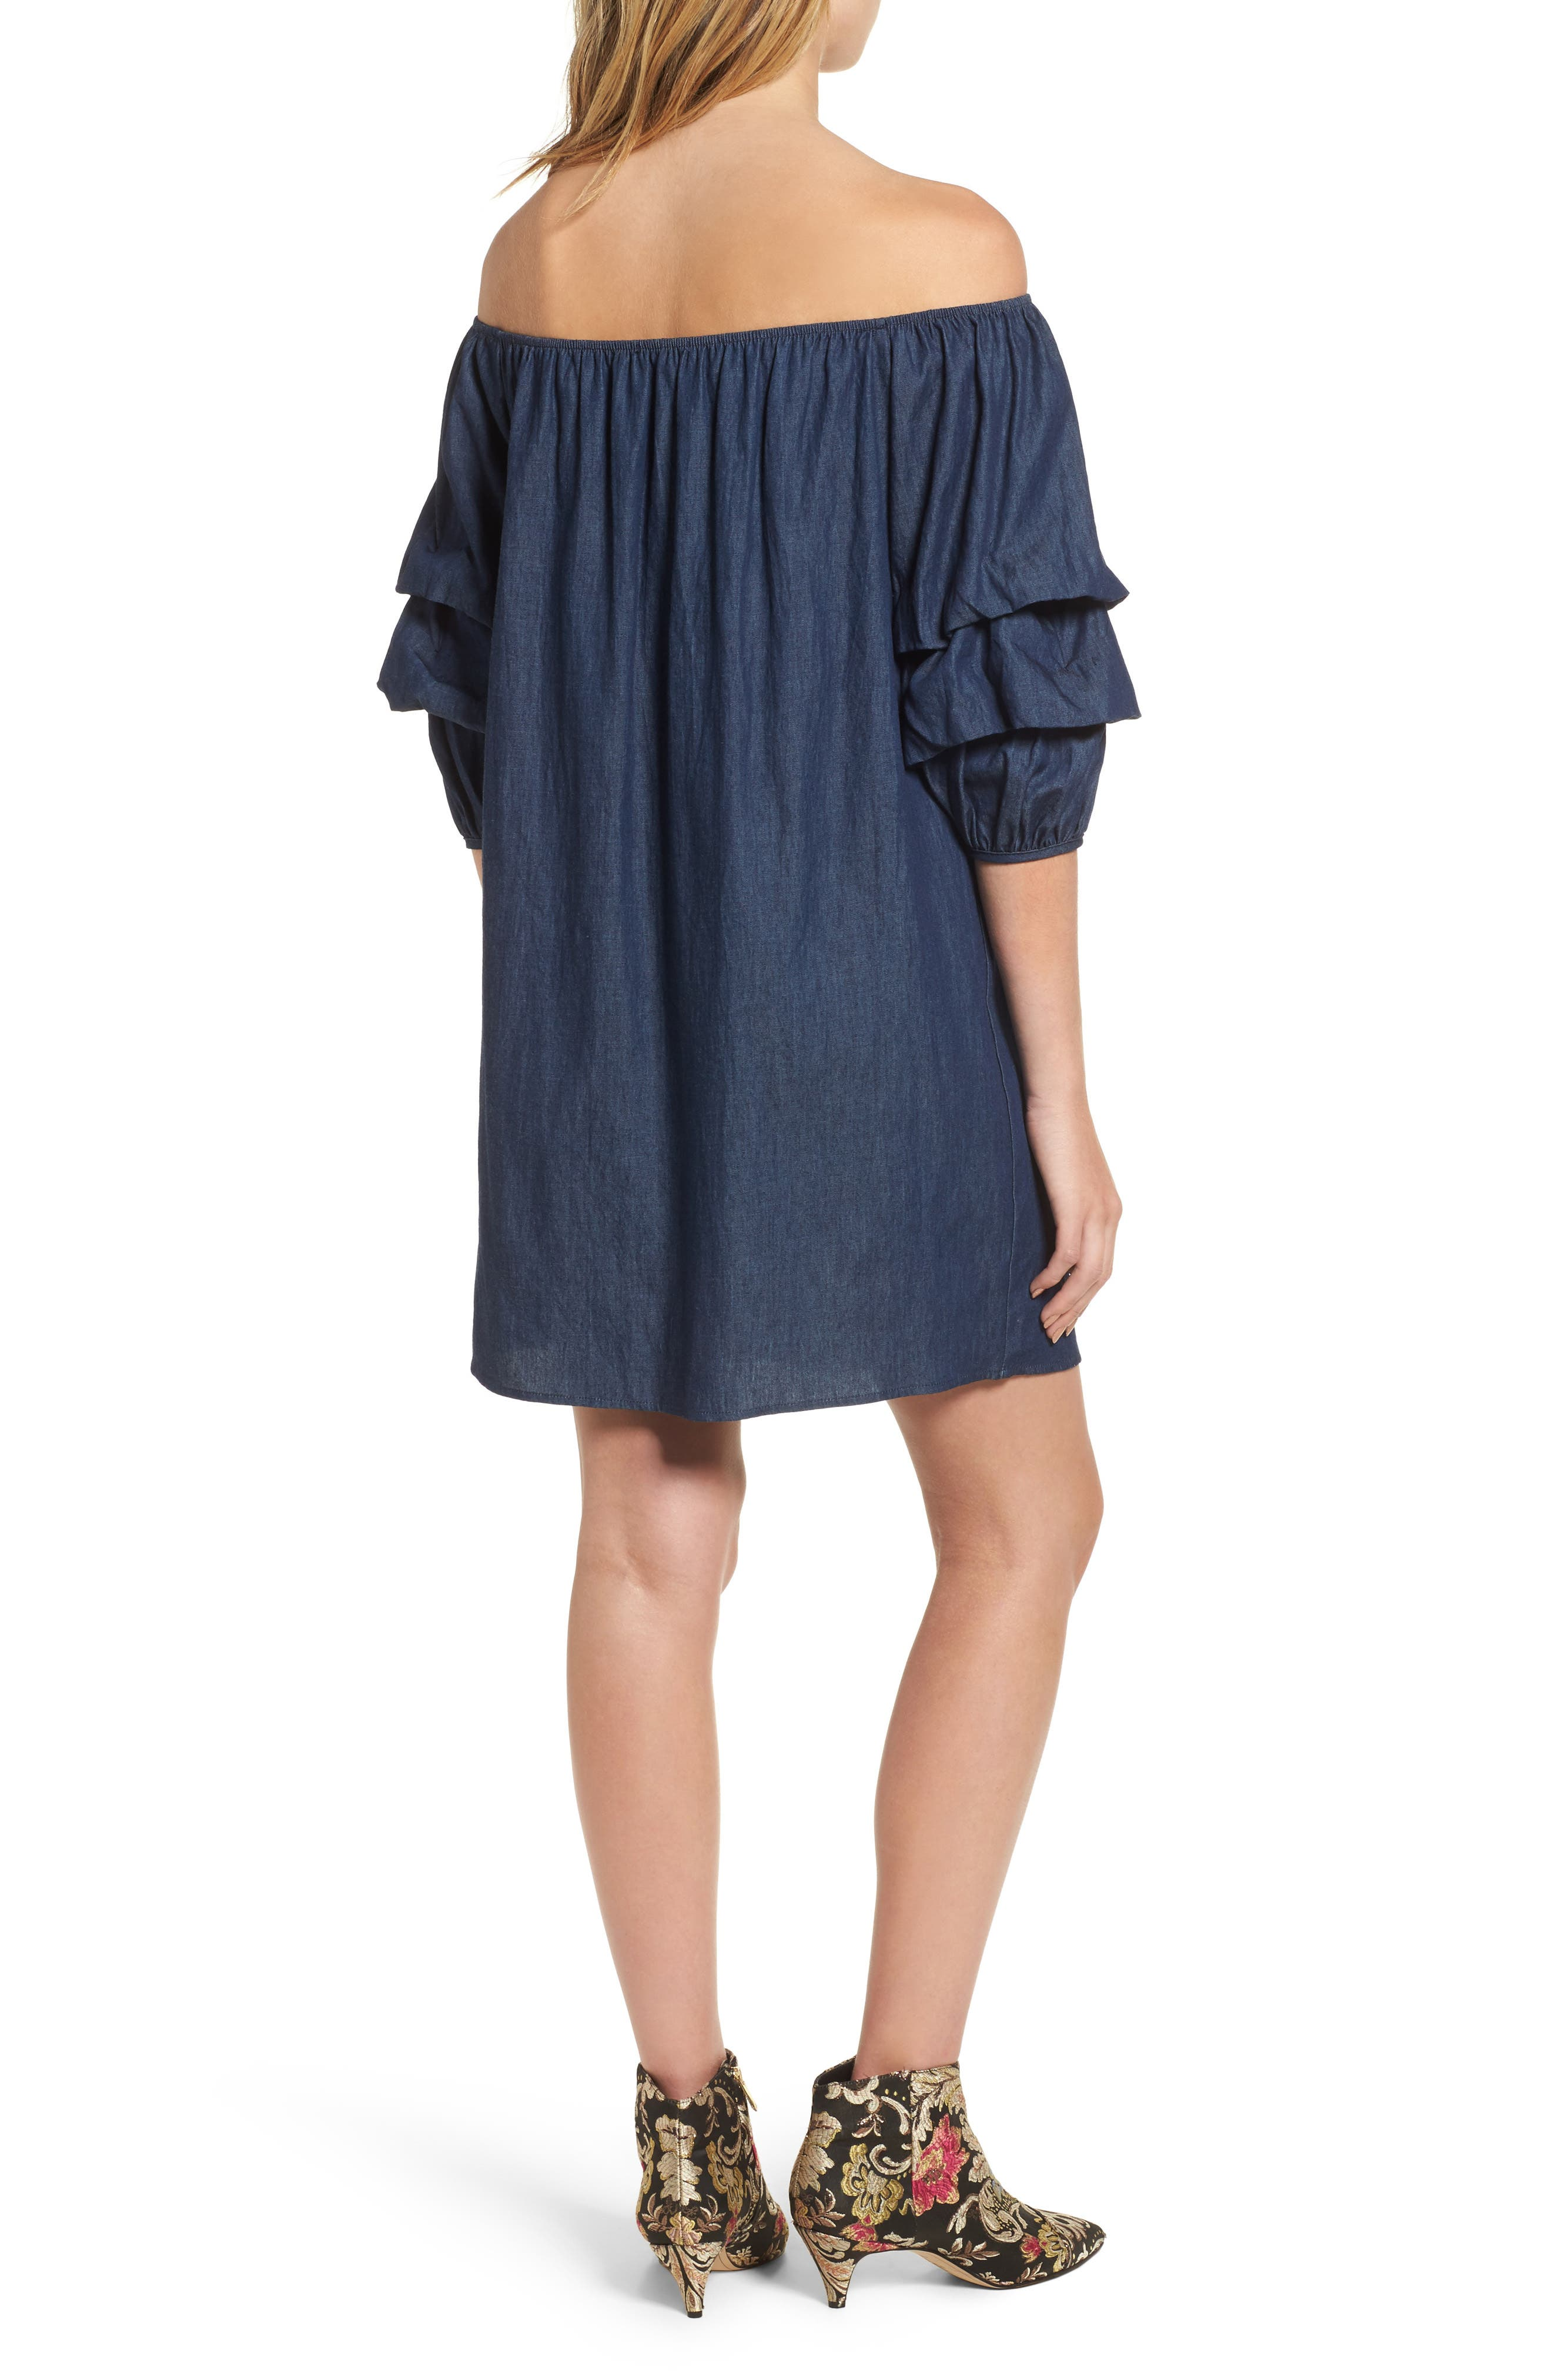 Off the Shoulder Denim Dress,                             Alternate thumbnail 2, color,                             401